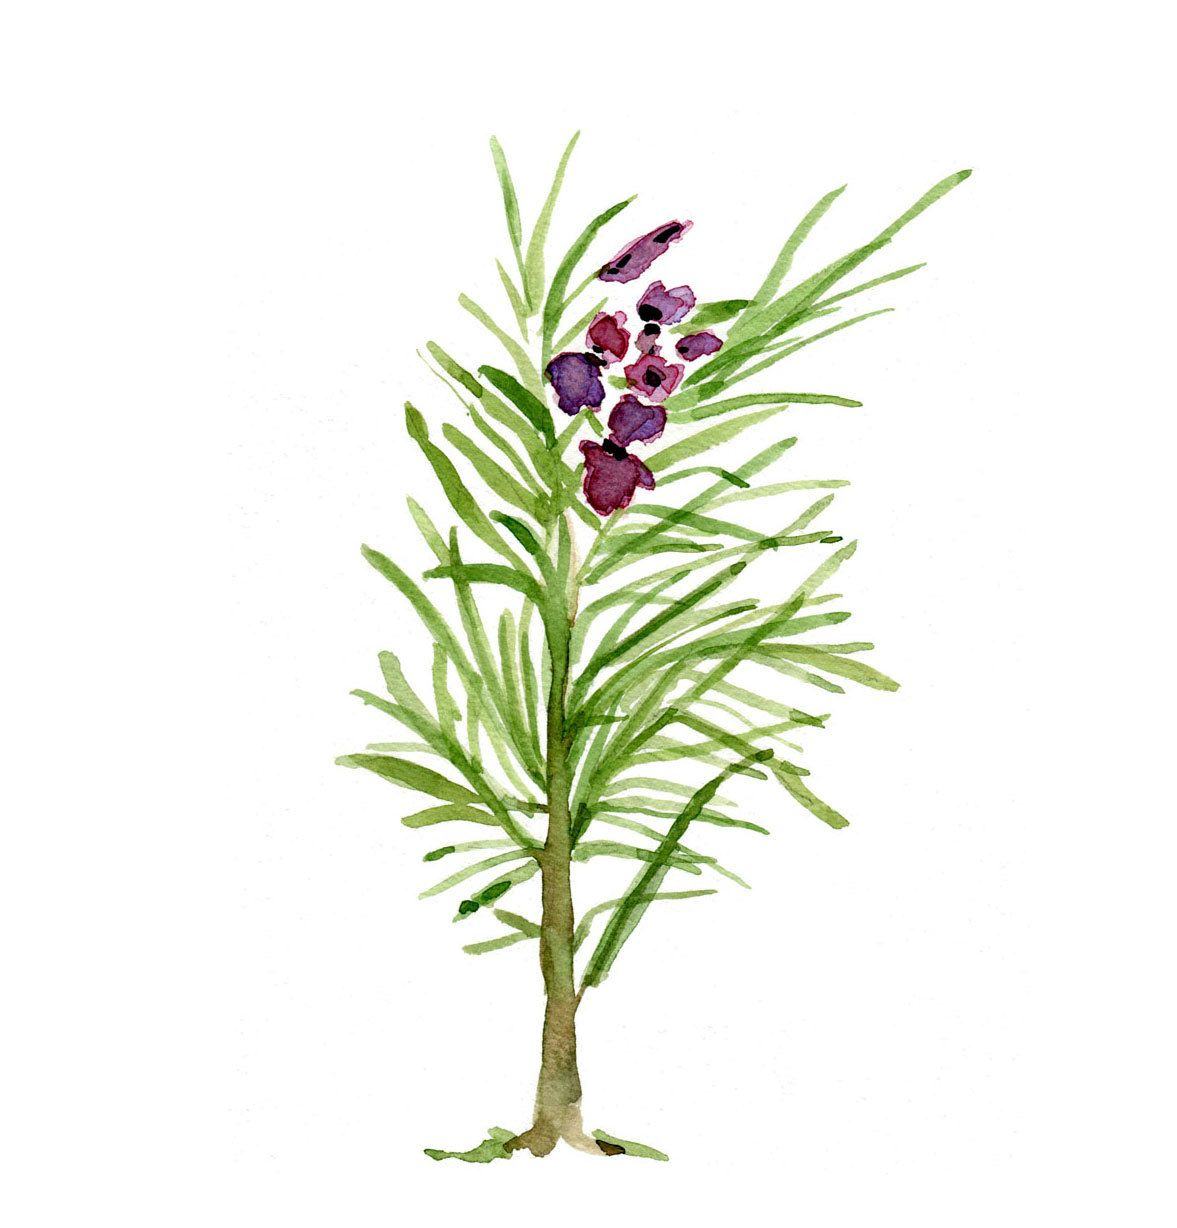 Rosemary original watercolor painting of Rosemary branch, green and purple , Plants, Botanical herb,, cottage chic, kitchen decor. $42.00, via Etsy.